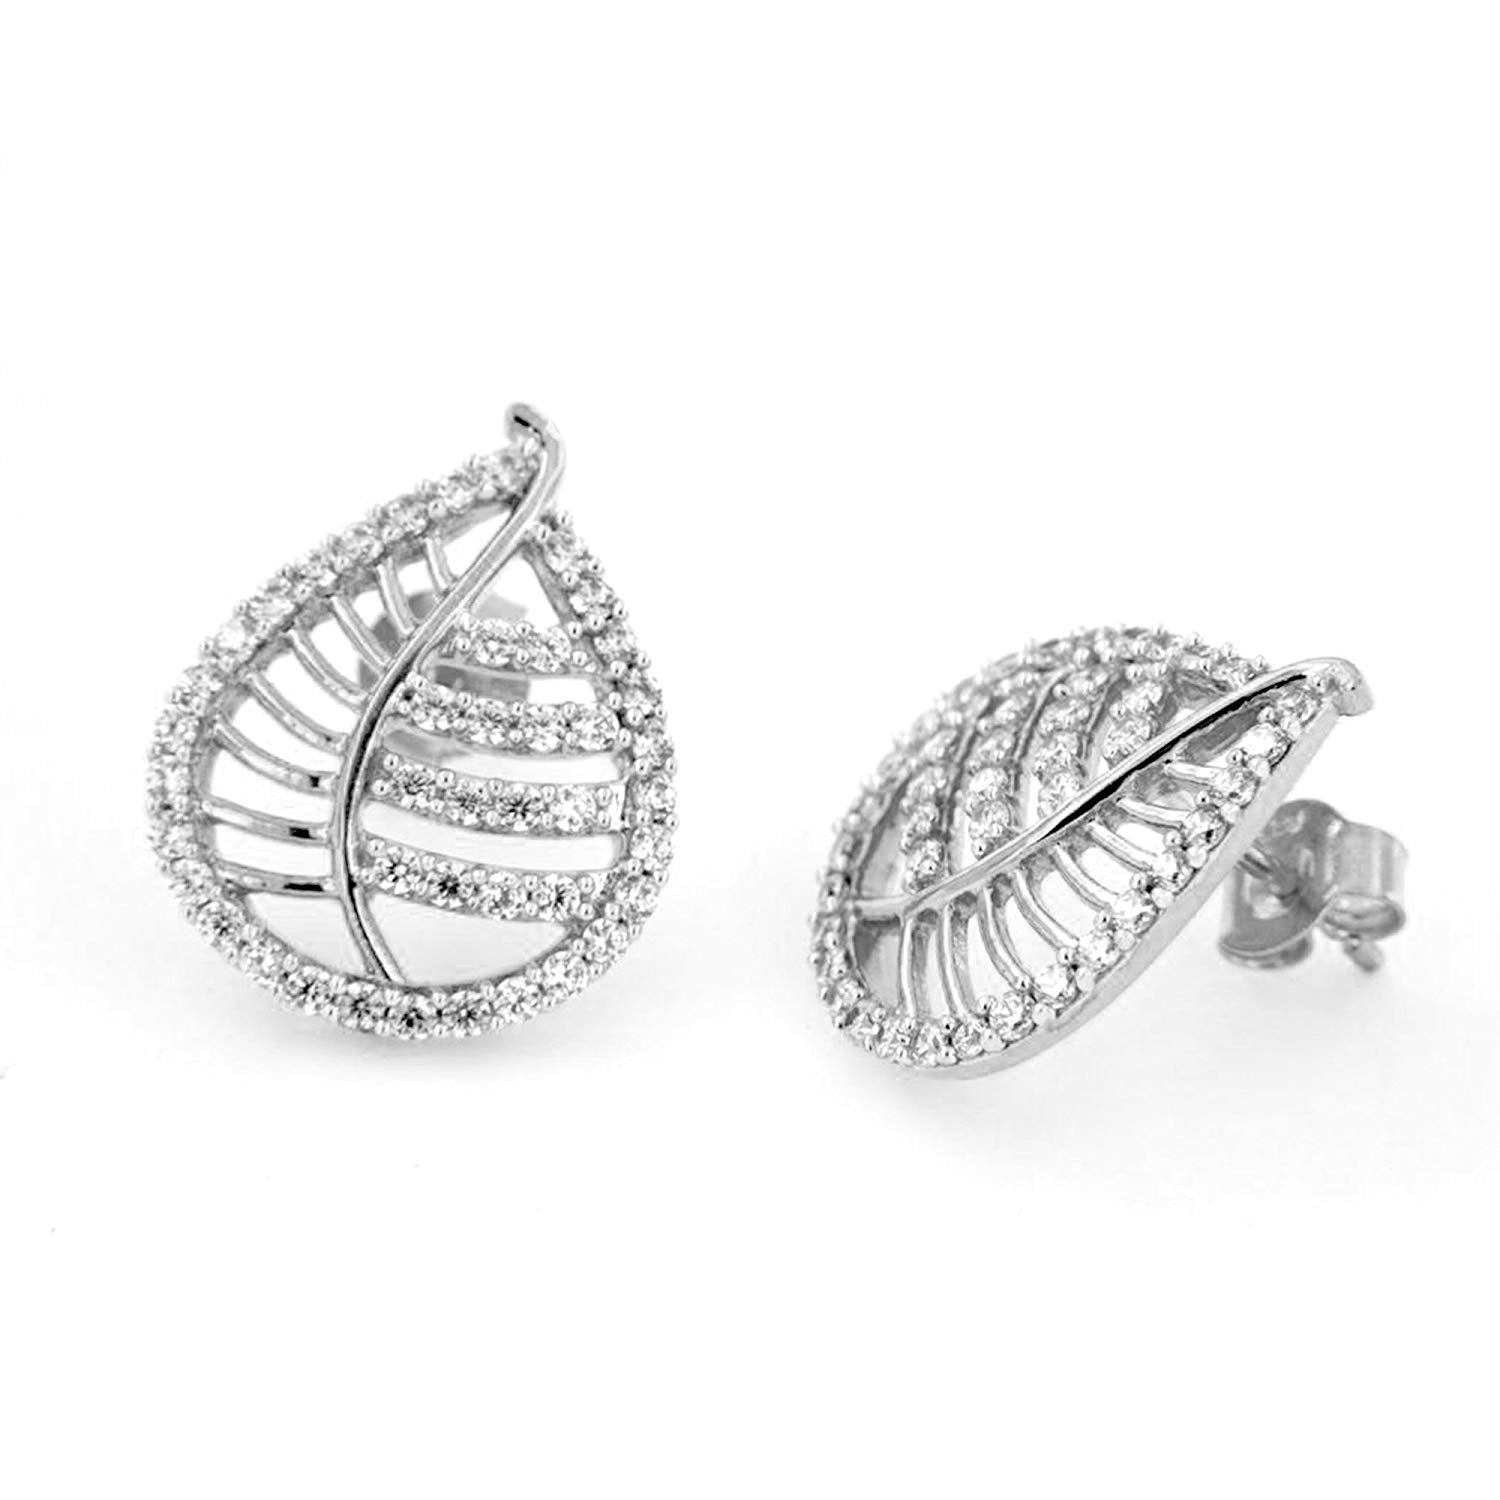 Round Cut White Cubic Zirconia Leaf Stud Earrings In 14K Rose Gold Over Sterling Silver